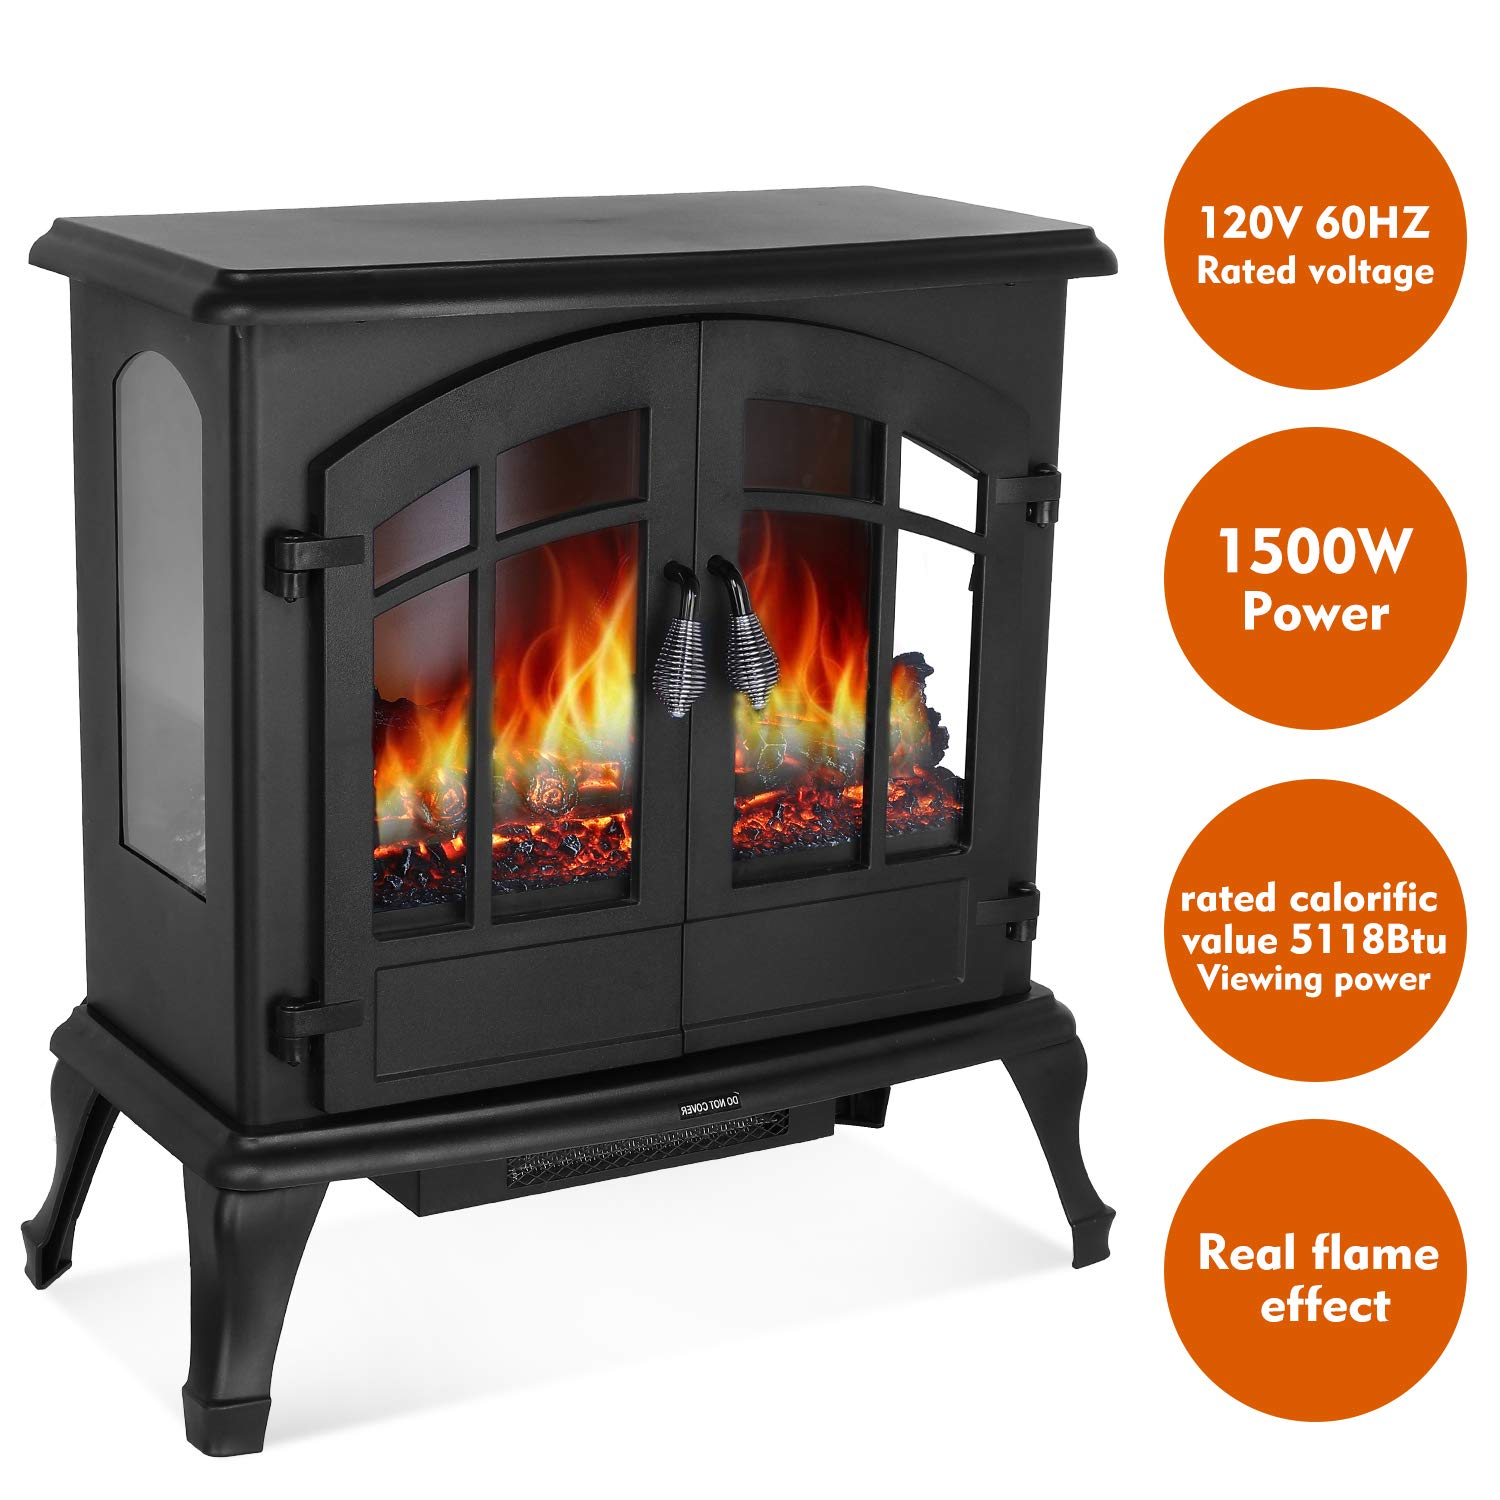 HEMBOR 24 Electric Fireplace Heater, 1500W Freestanding Stove with Realistic Burning Flame, Overheating Safety Protection, Easy Knob Button Control and 3D Viewing Experience, Home Furniture Black